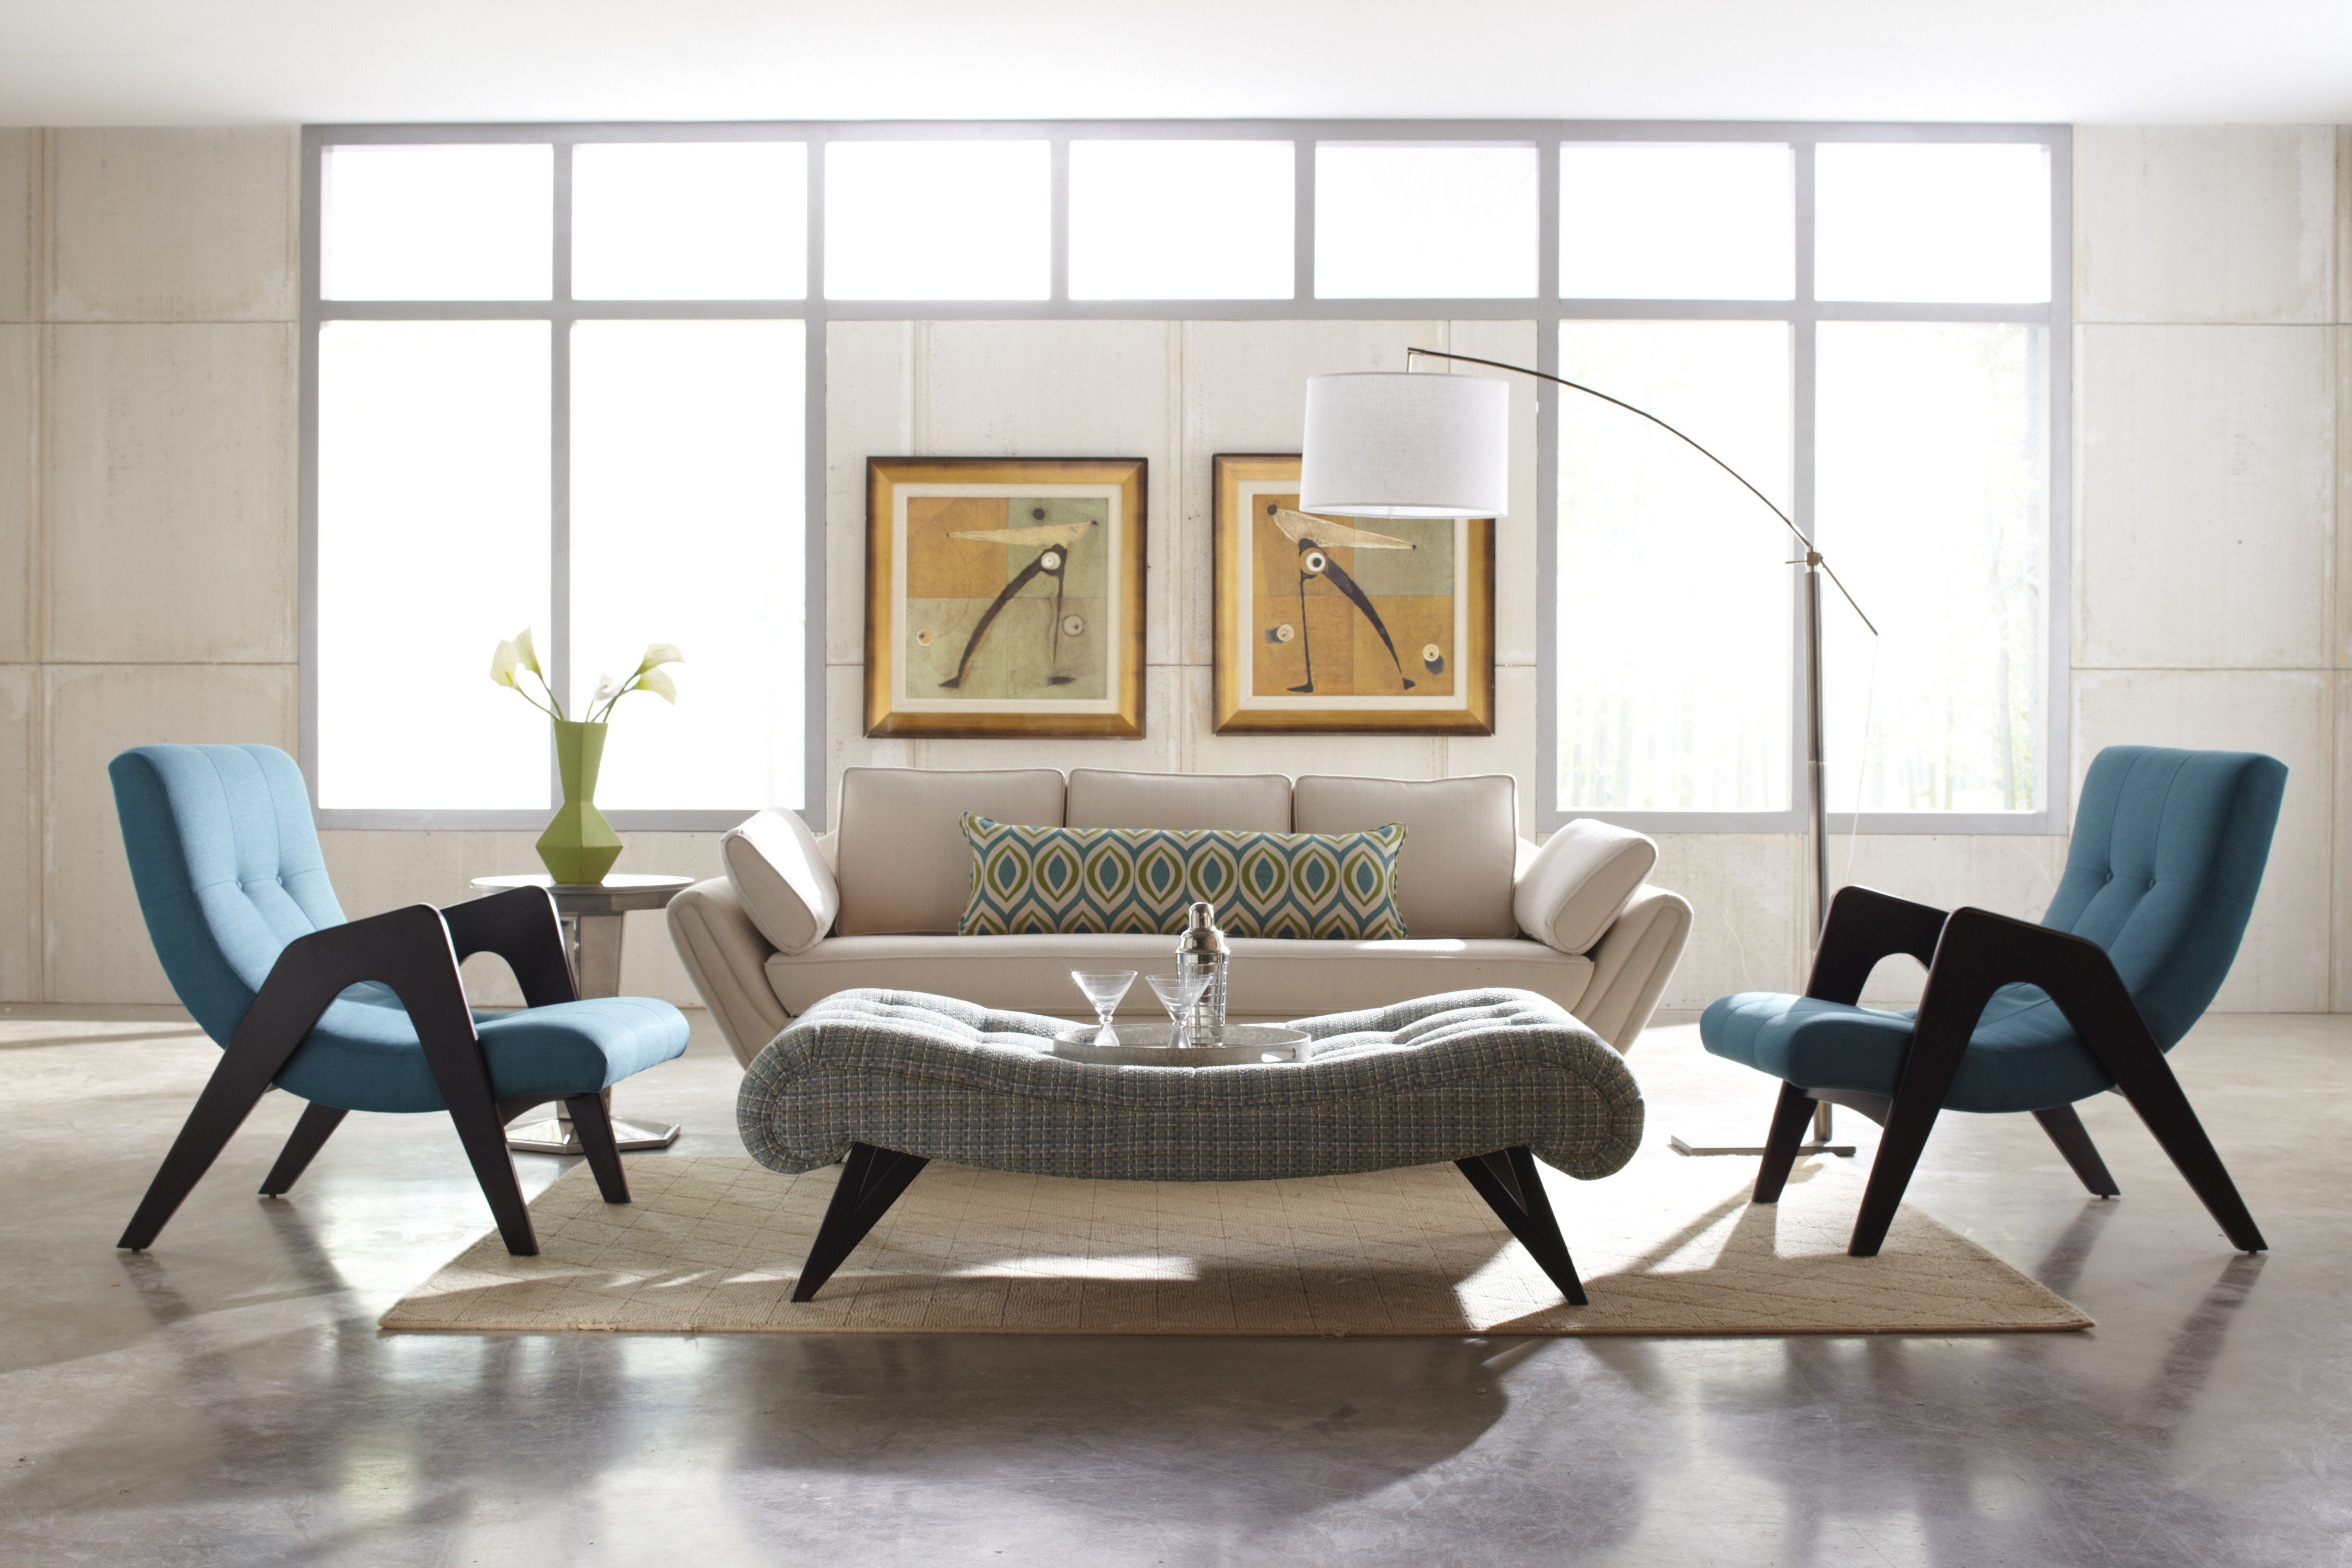 Modern Chair Living Room Decorating Ideas Contemporary or Modern What's the Difference In Interior